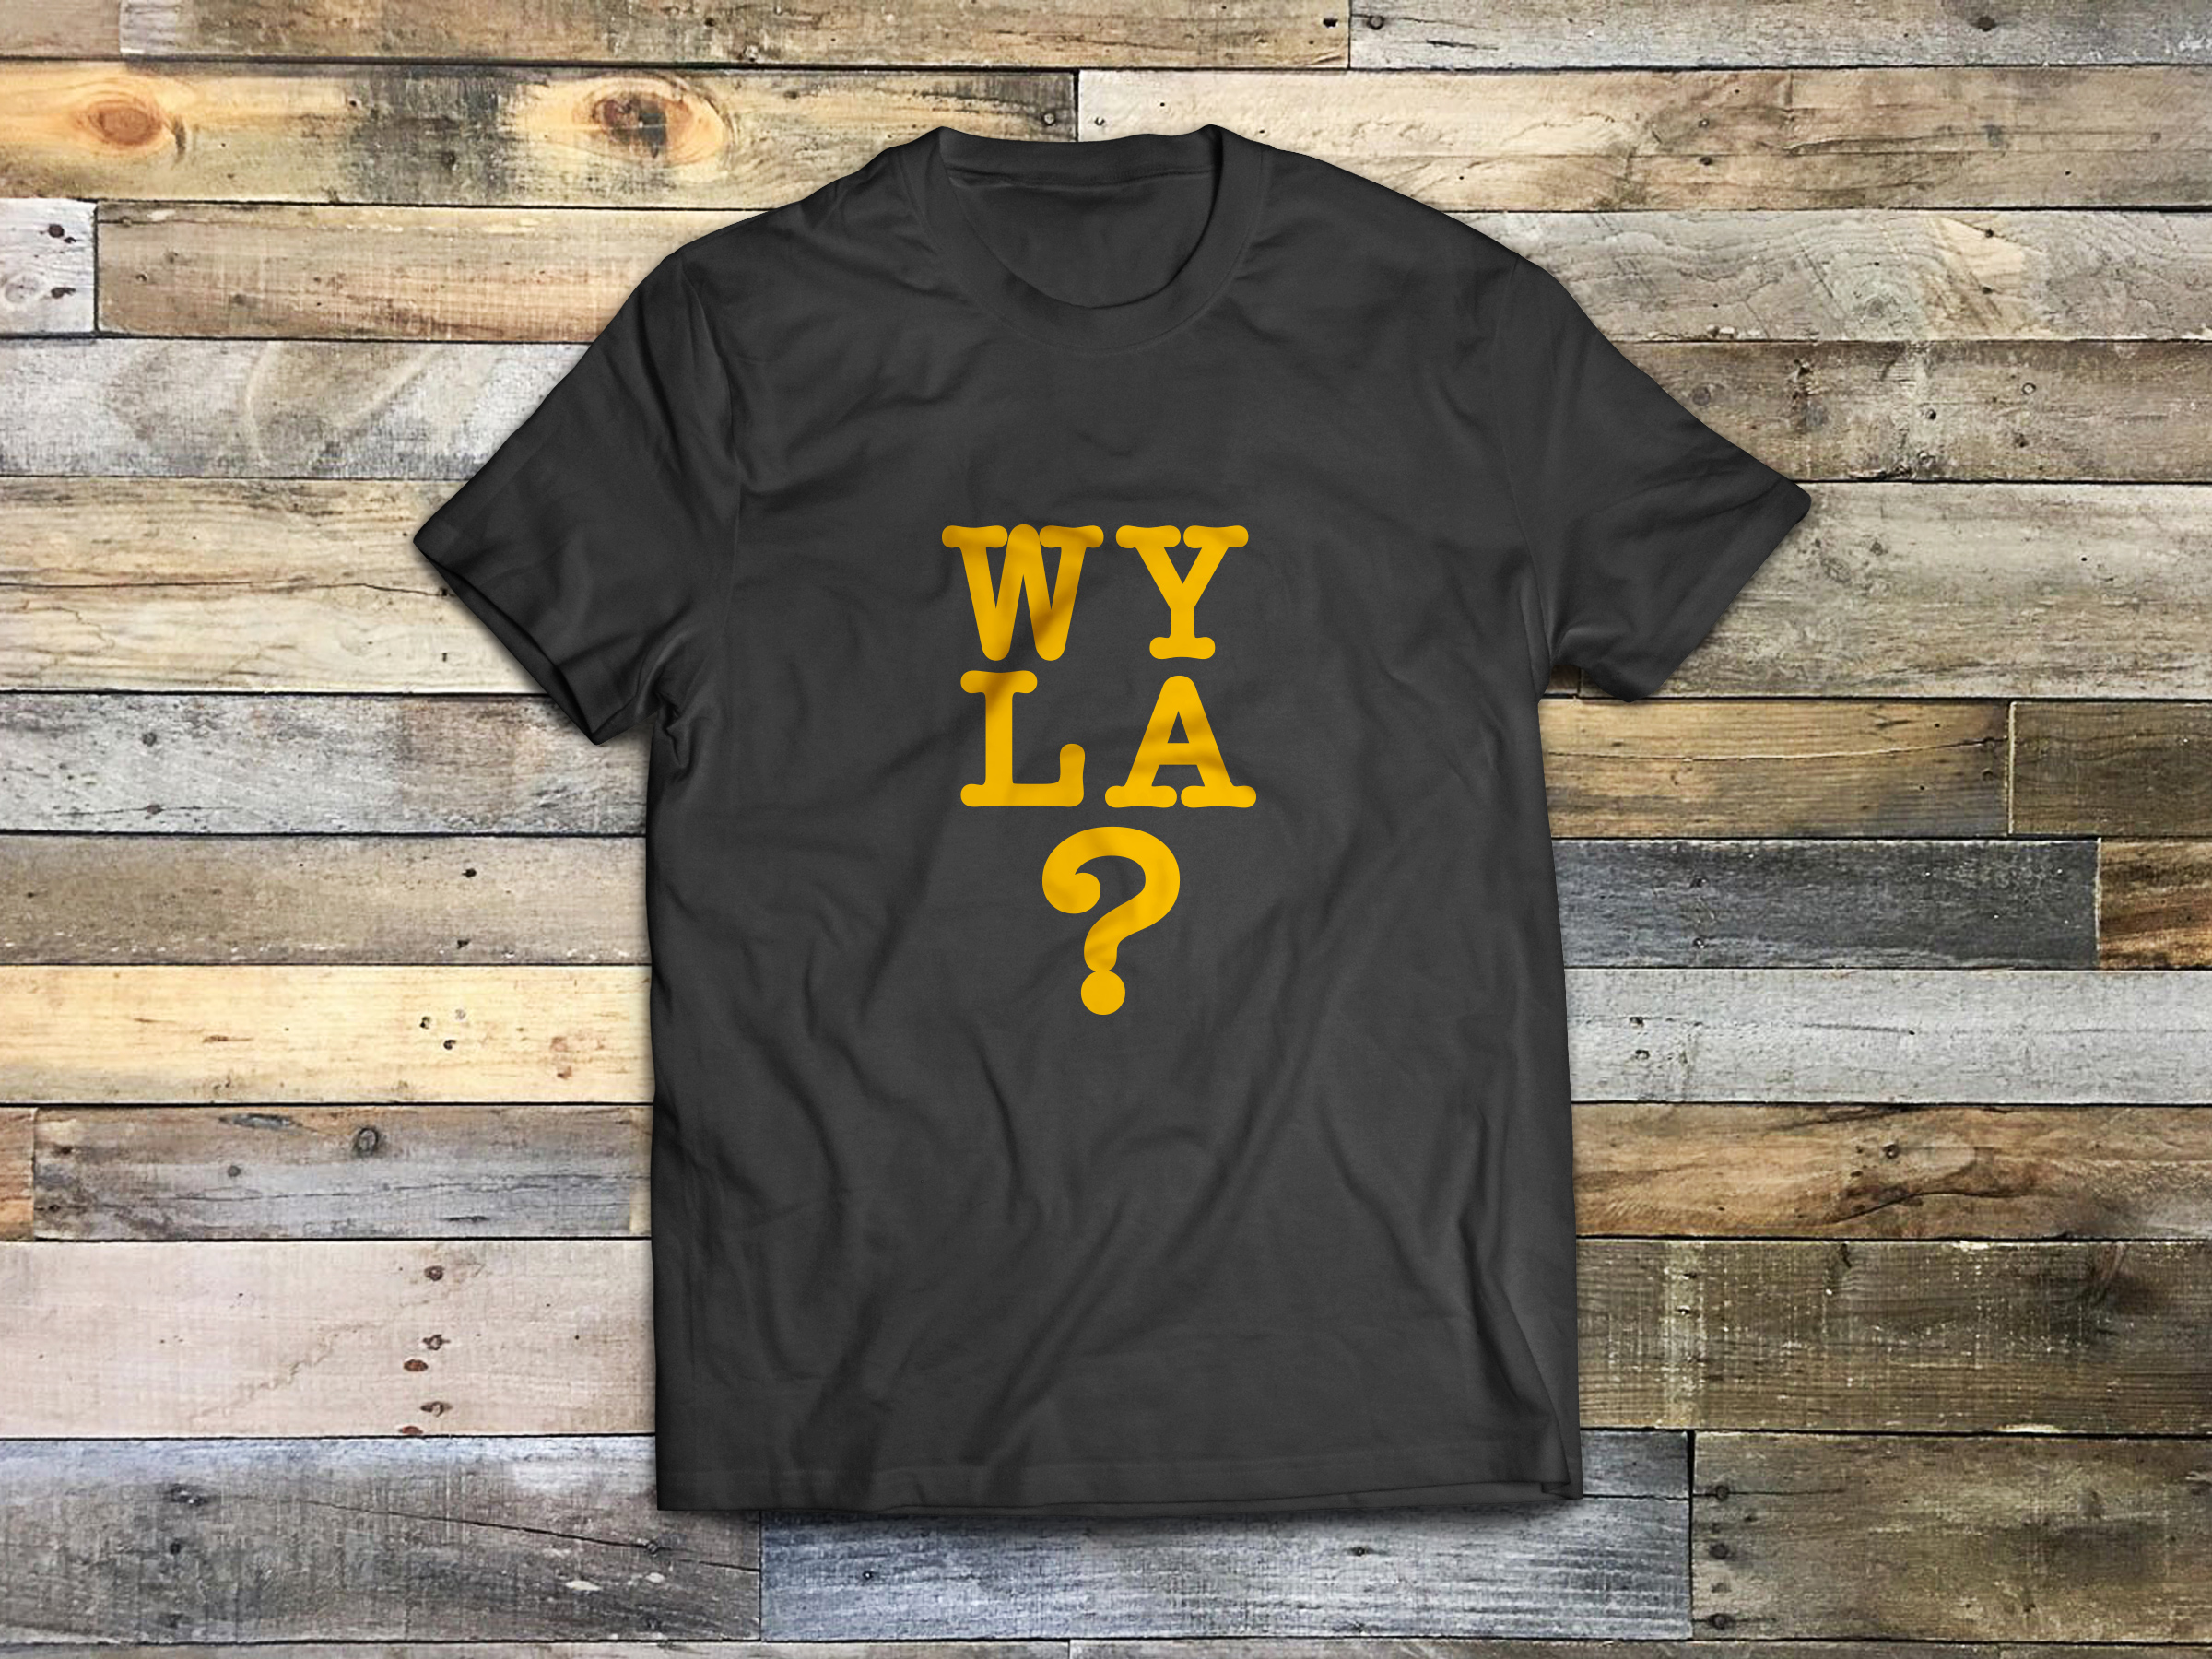 Black crew neck t-shirt with yellow/gold letters, wyla? on the front